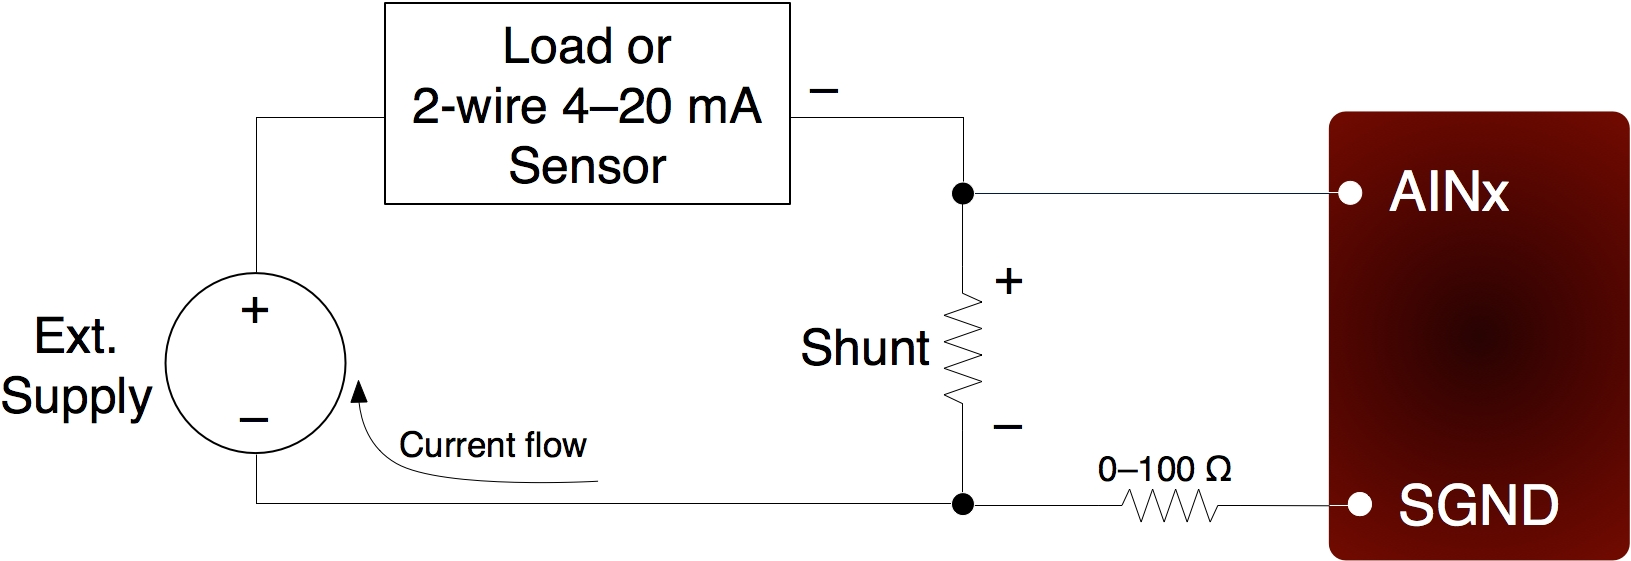 2 wire pressure transducer wiring diagram Collection-Figure 9-i